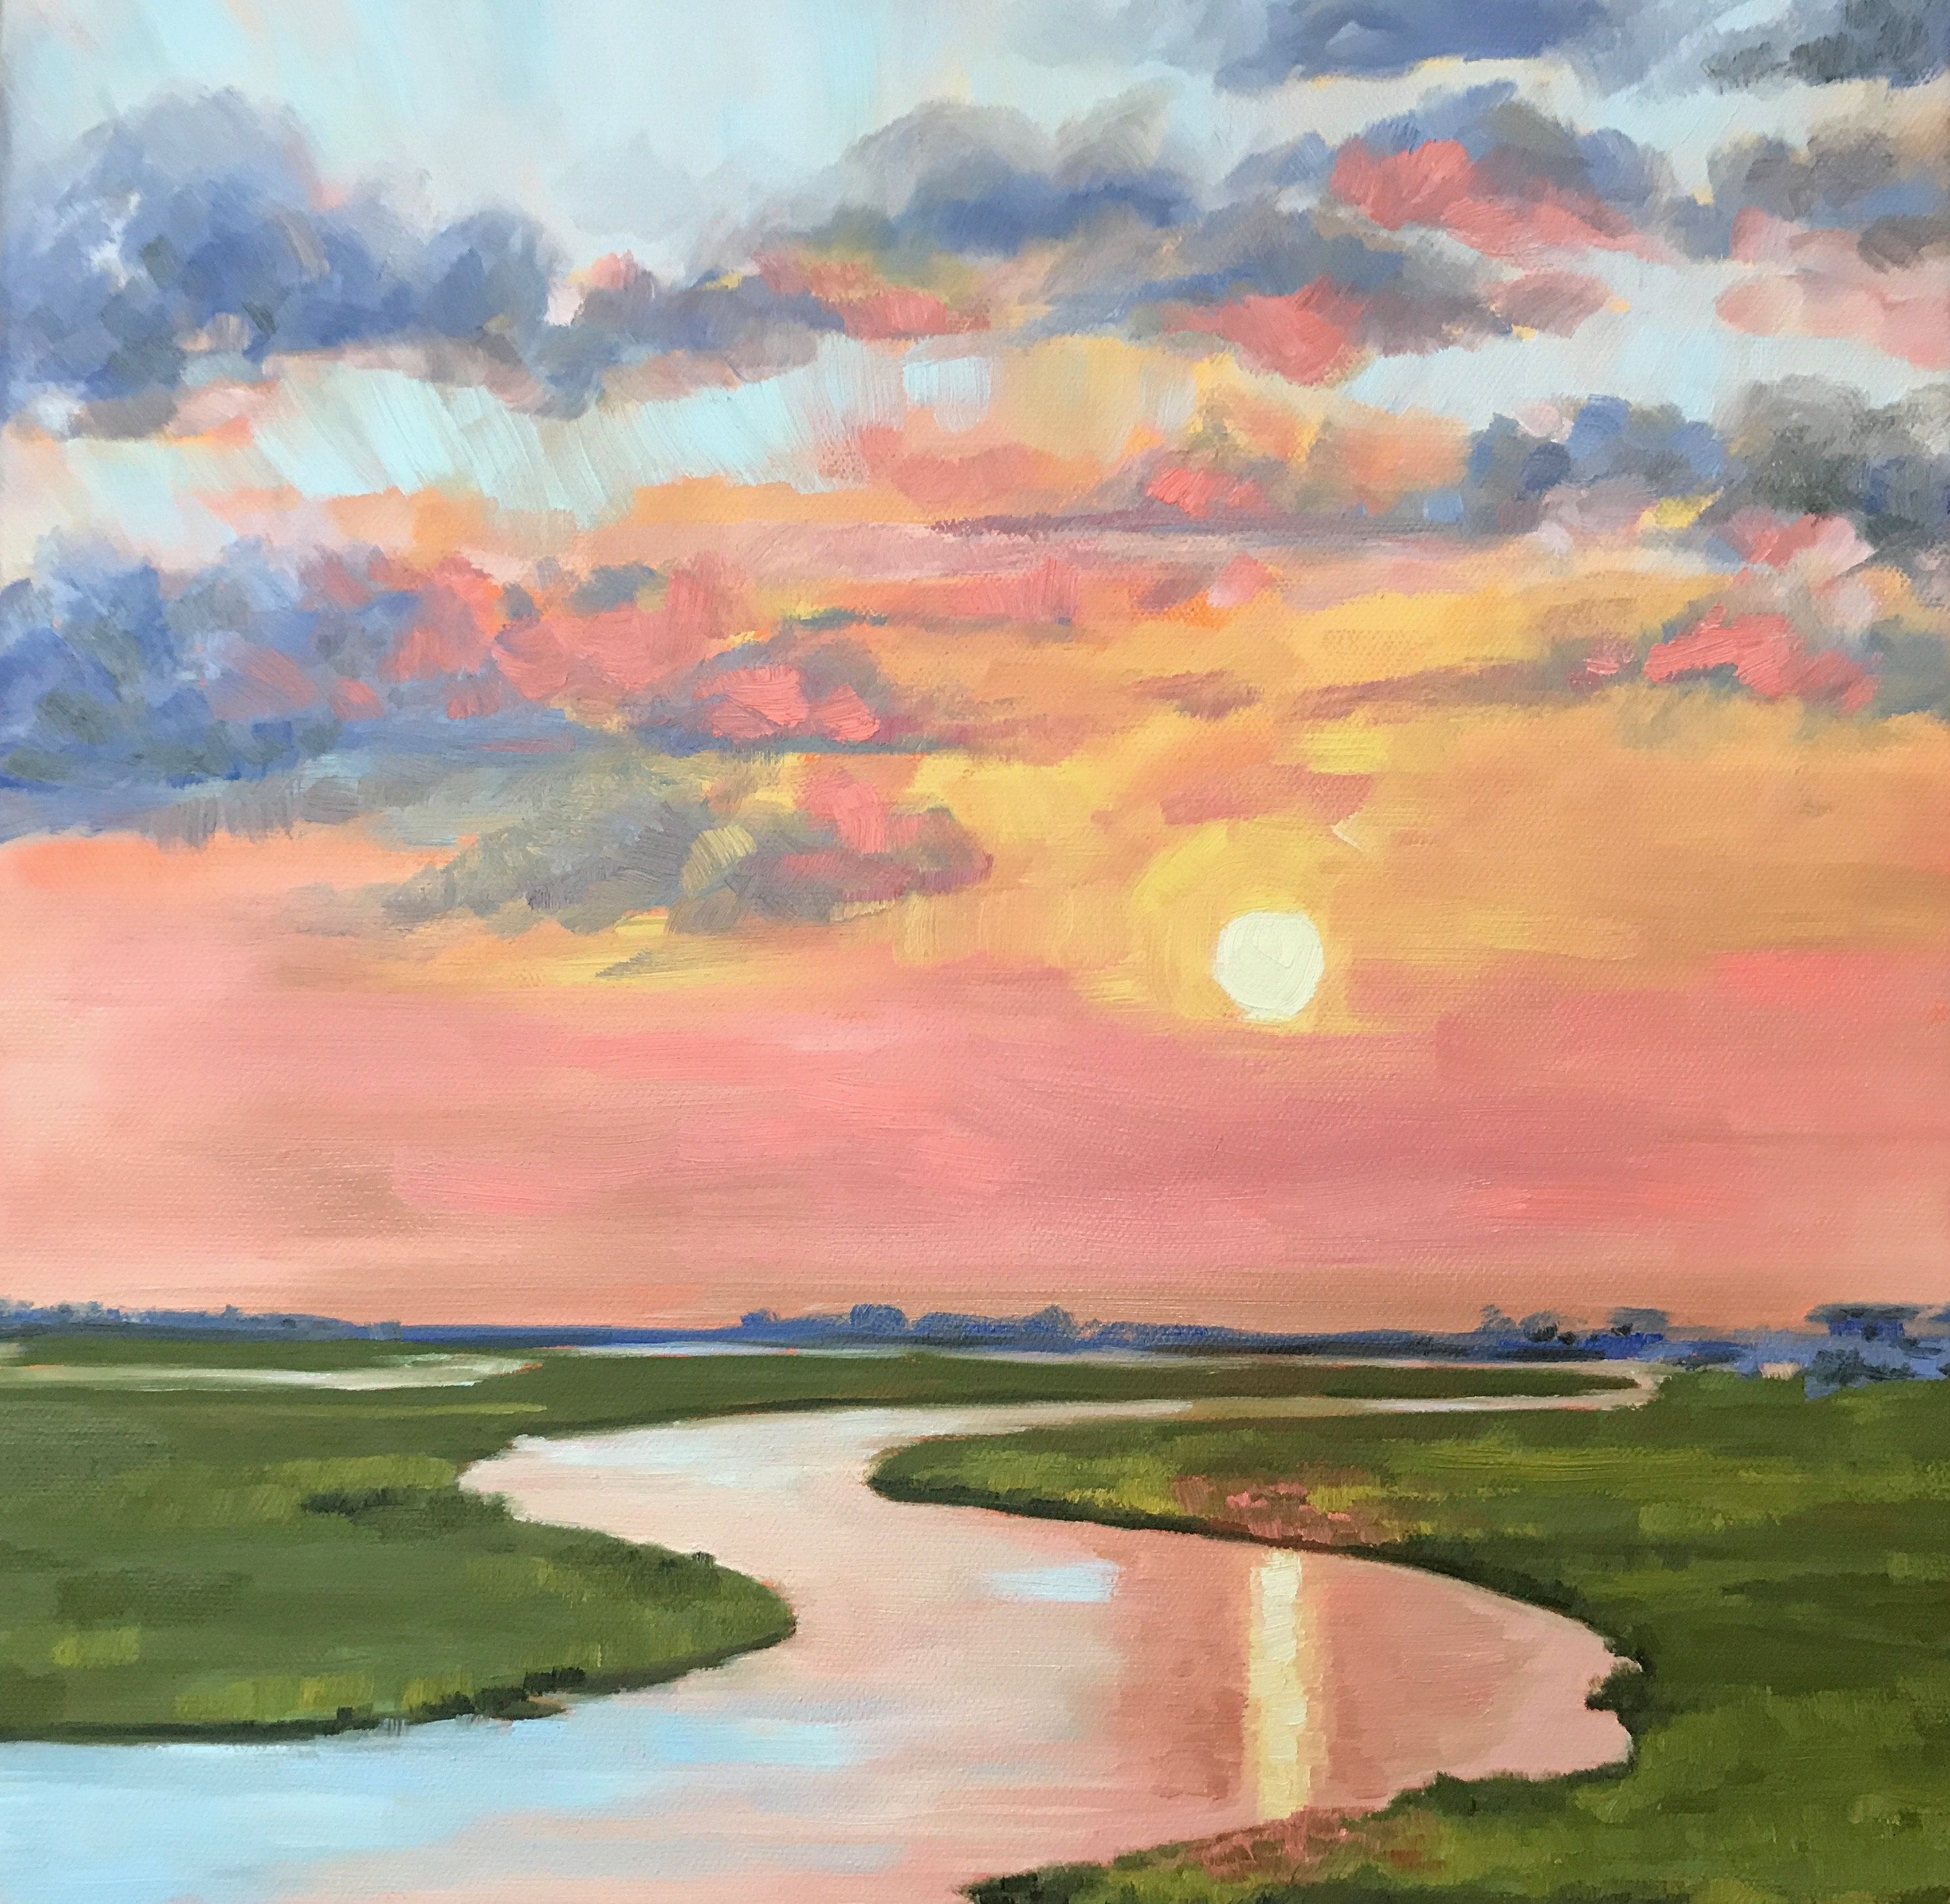 Sunset In The Lowcountry Large Coastal Marsh Landscape Painting By Contemporary Impressionist April Moffatt In 2020 Square Painting Coastal Marsh Landscape Canvas Art